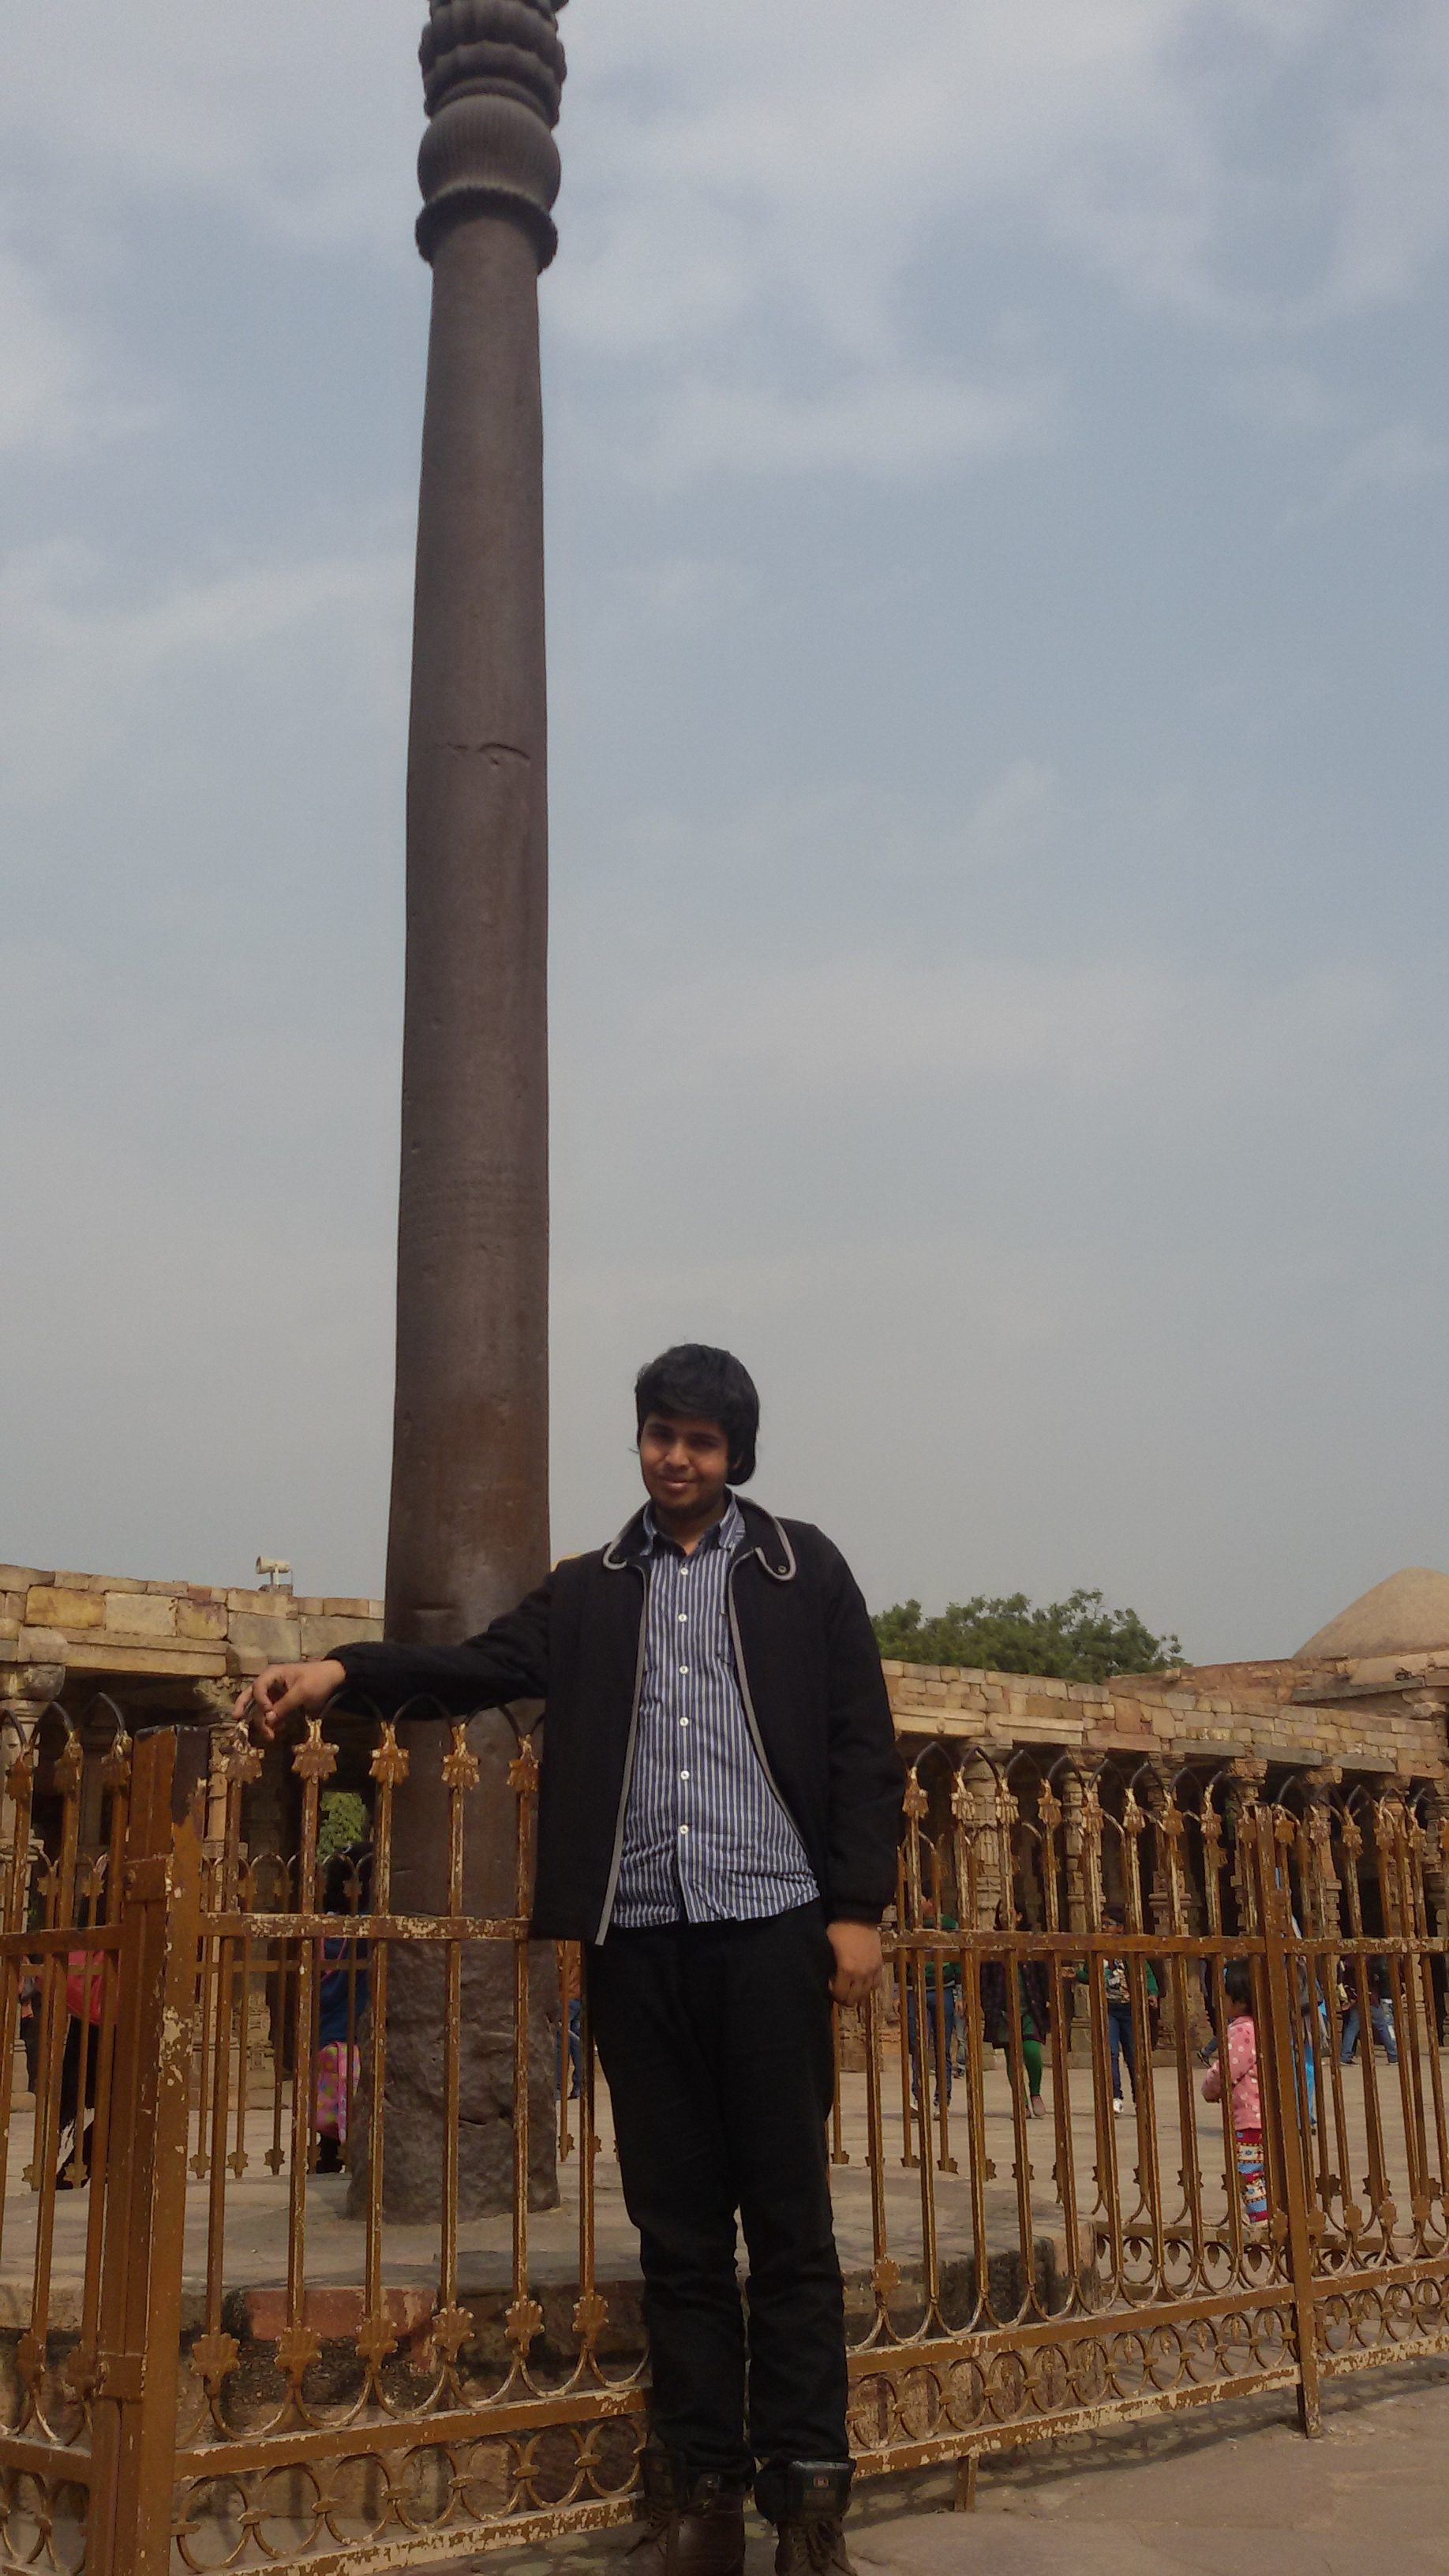 A place which has its own history - Qutub minar